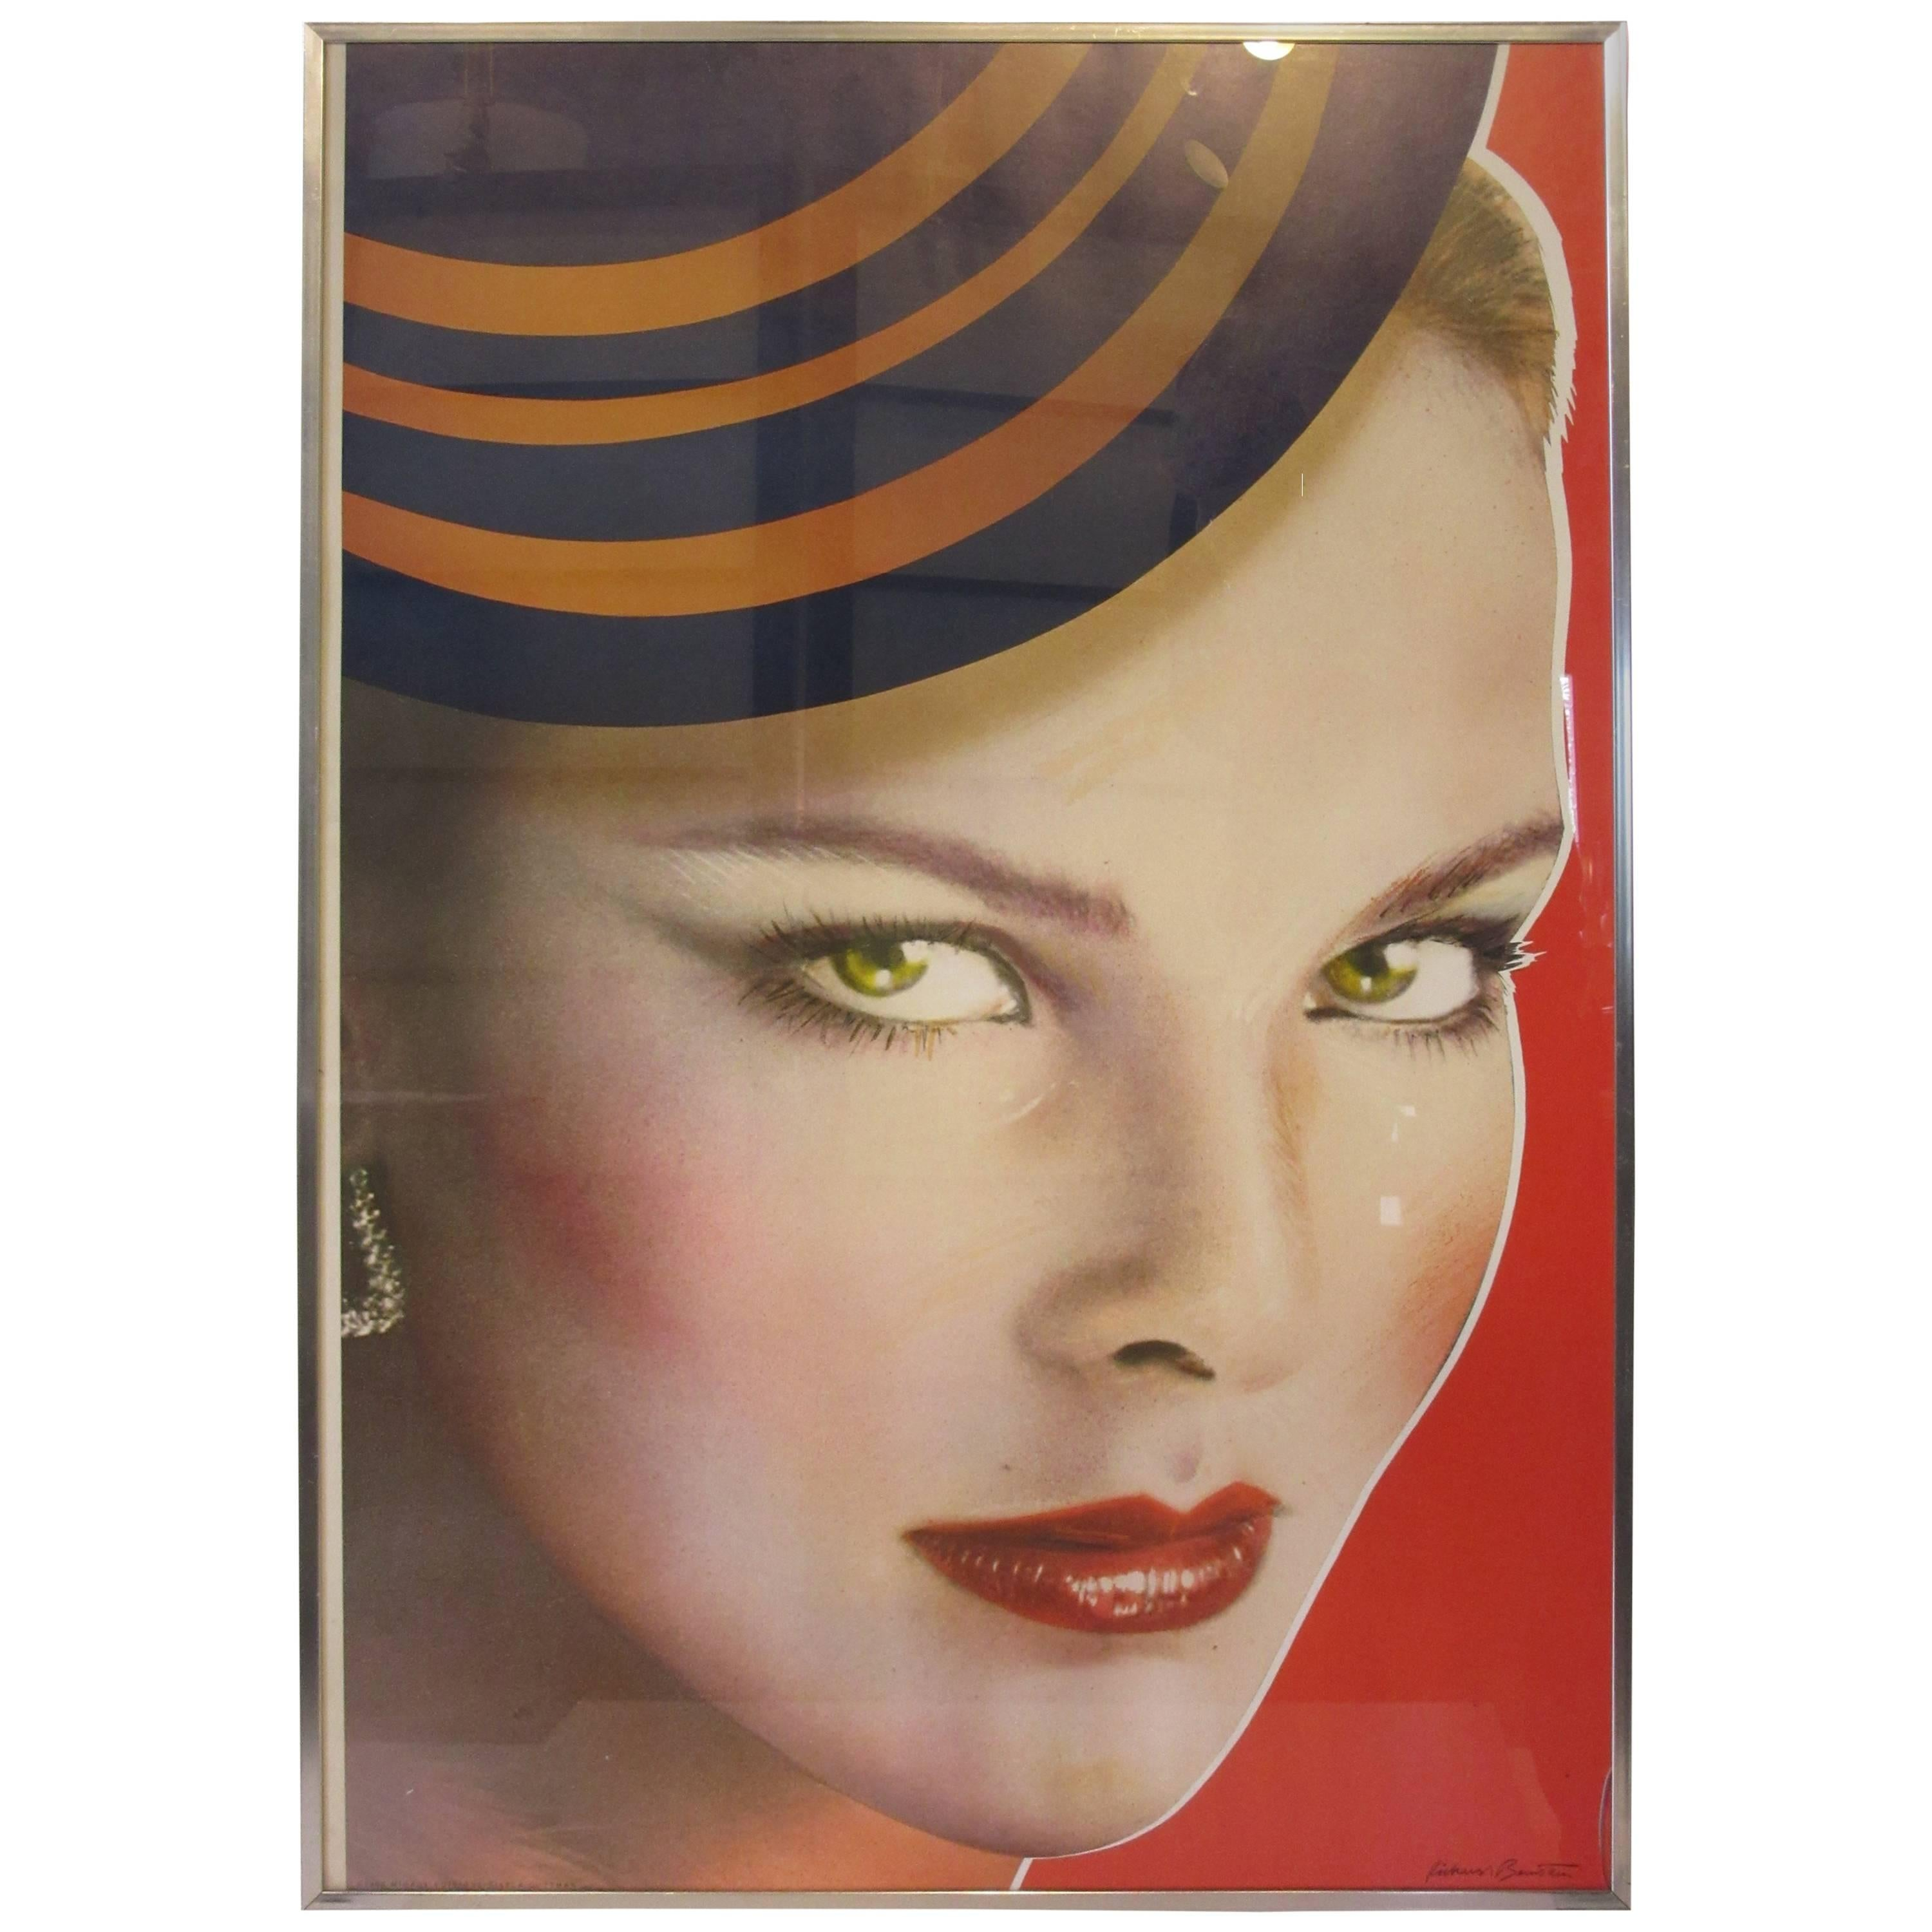 Large Interview Magazine Richard Bernstein Color Litho in the Manner of Warhol